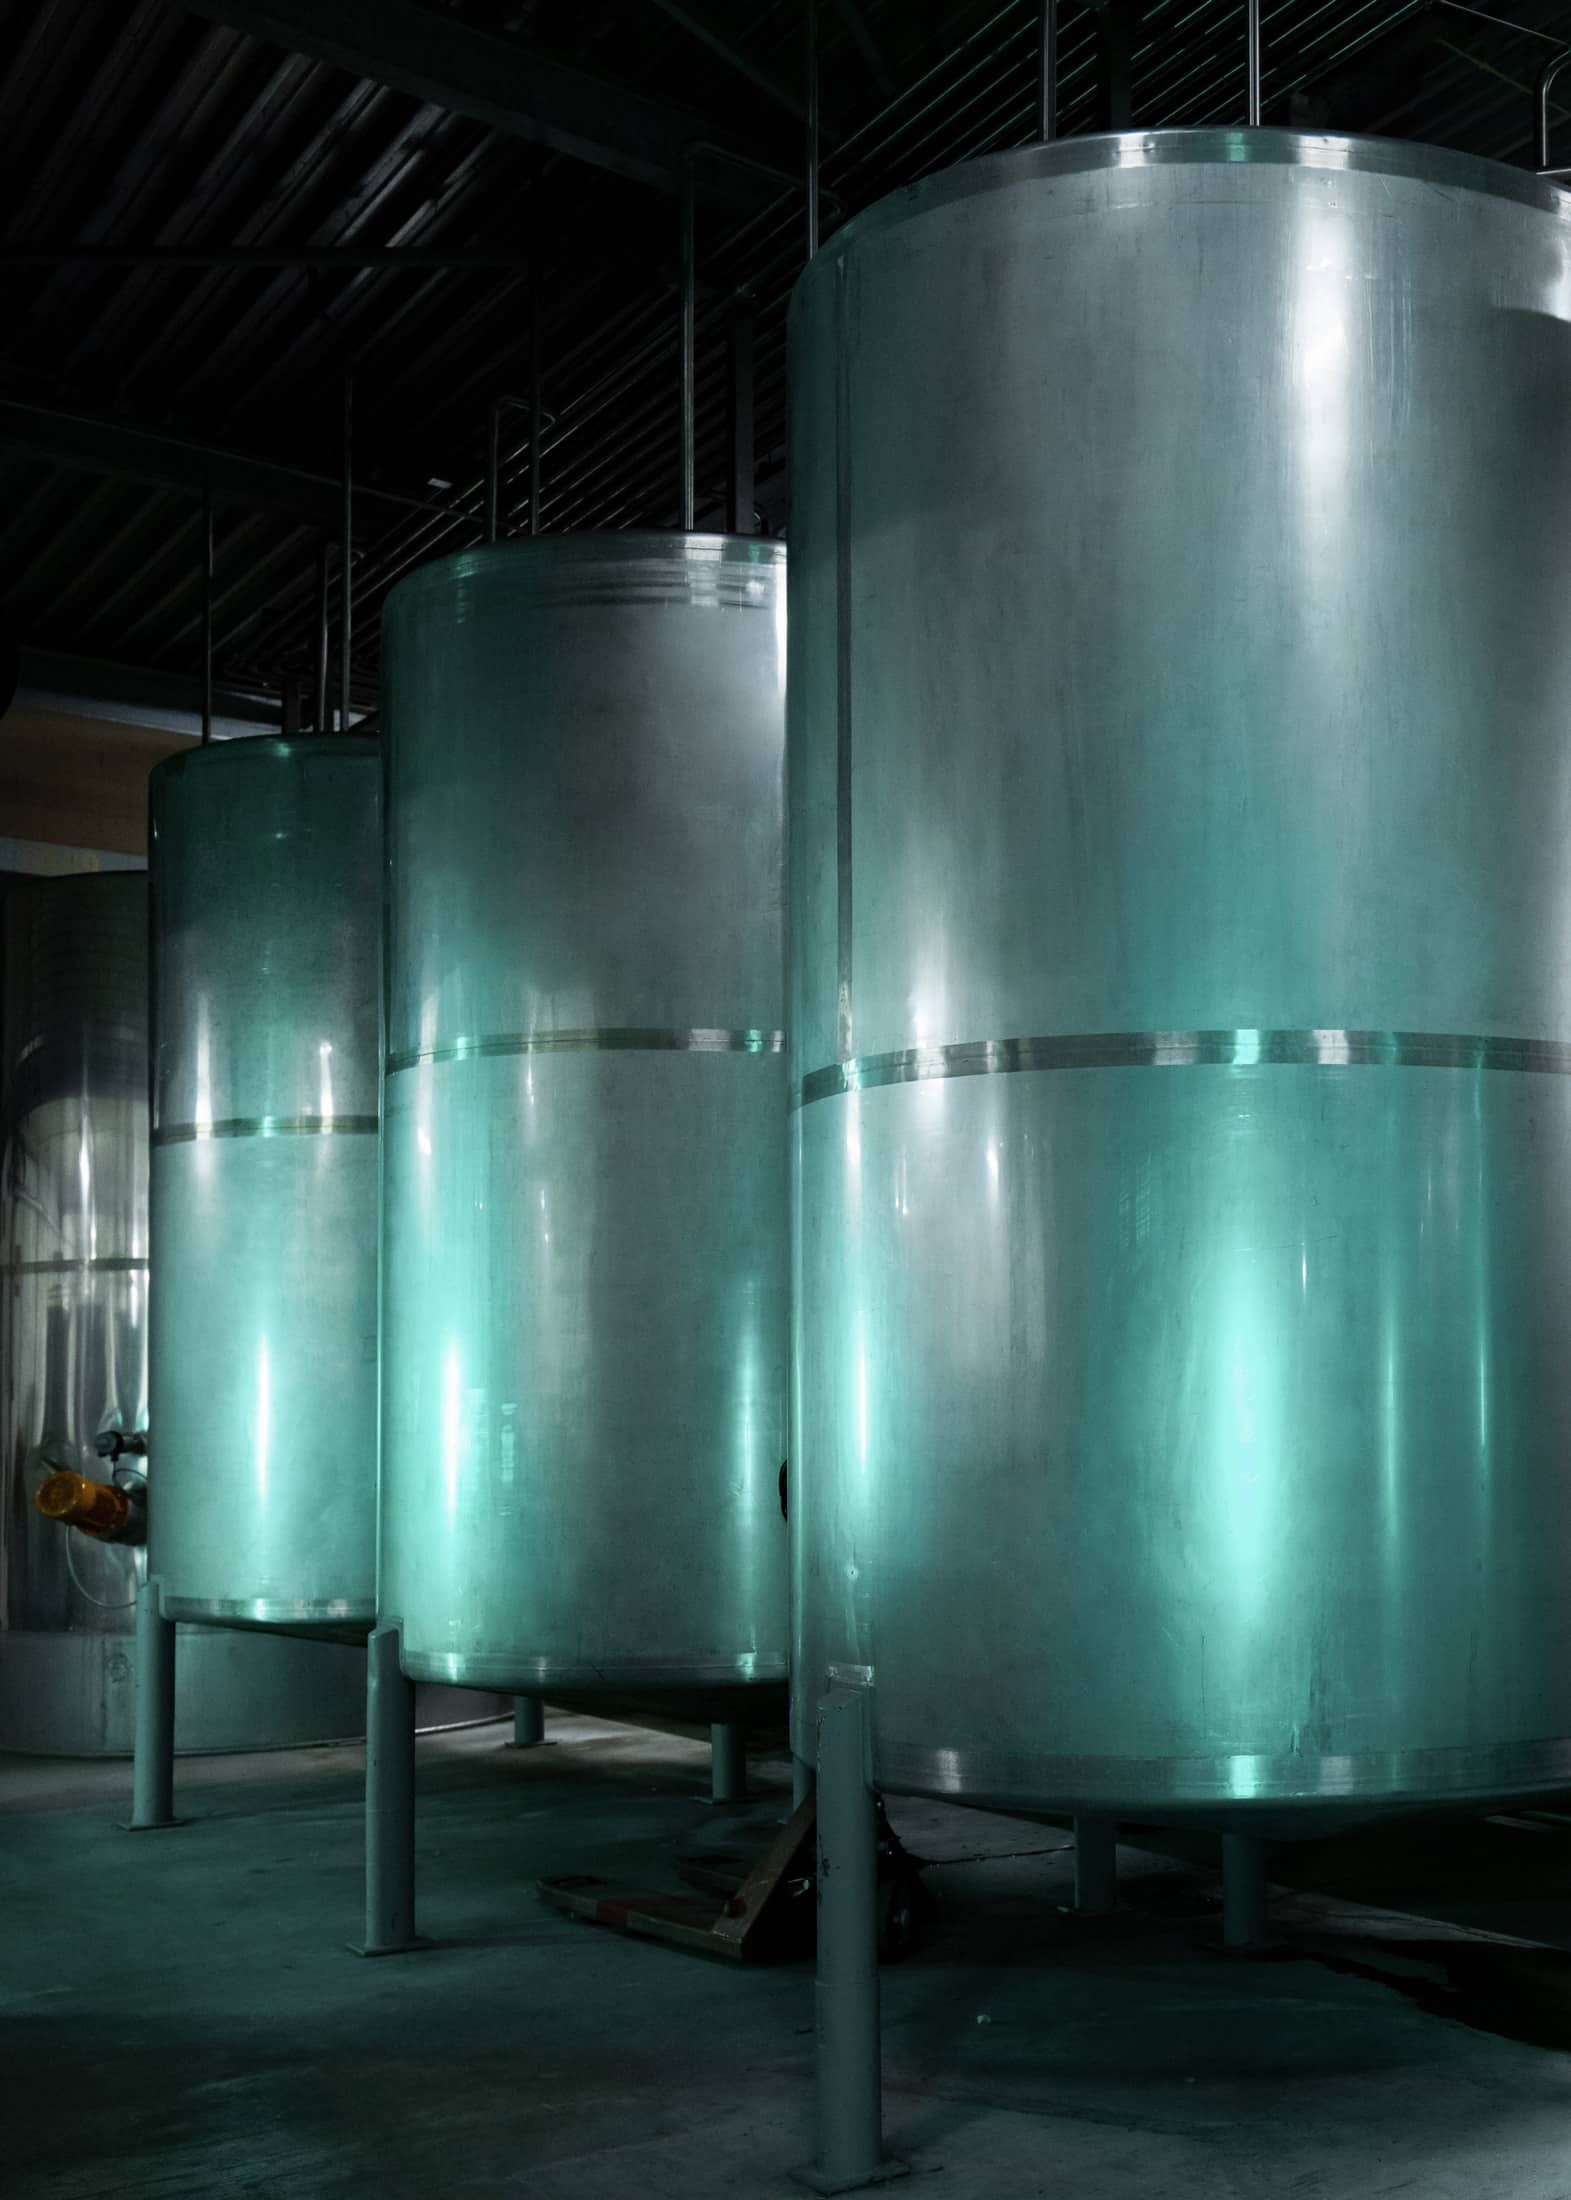 Storing the vodka in silos is a important step to purify vodka.